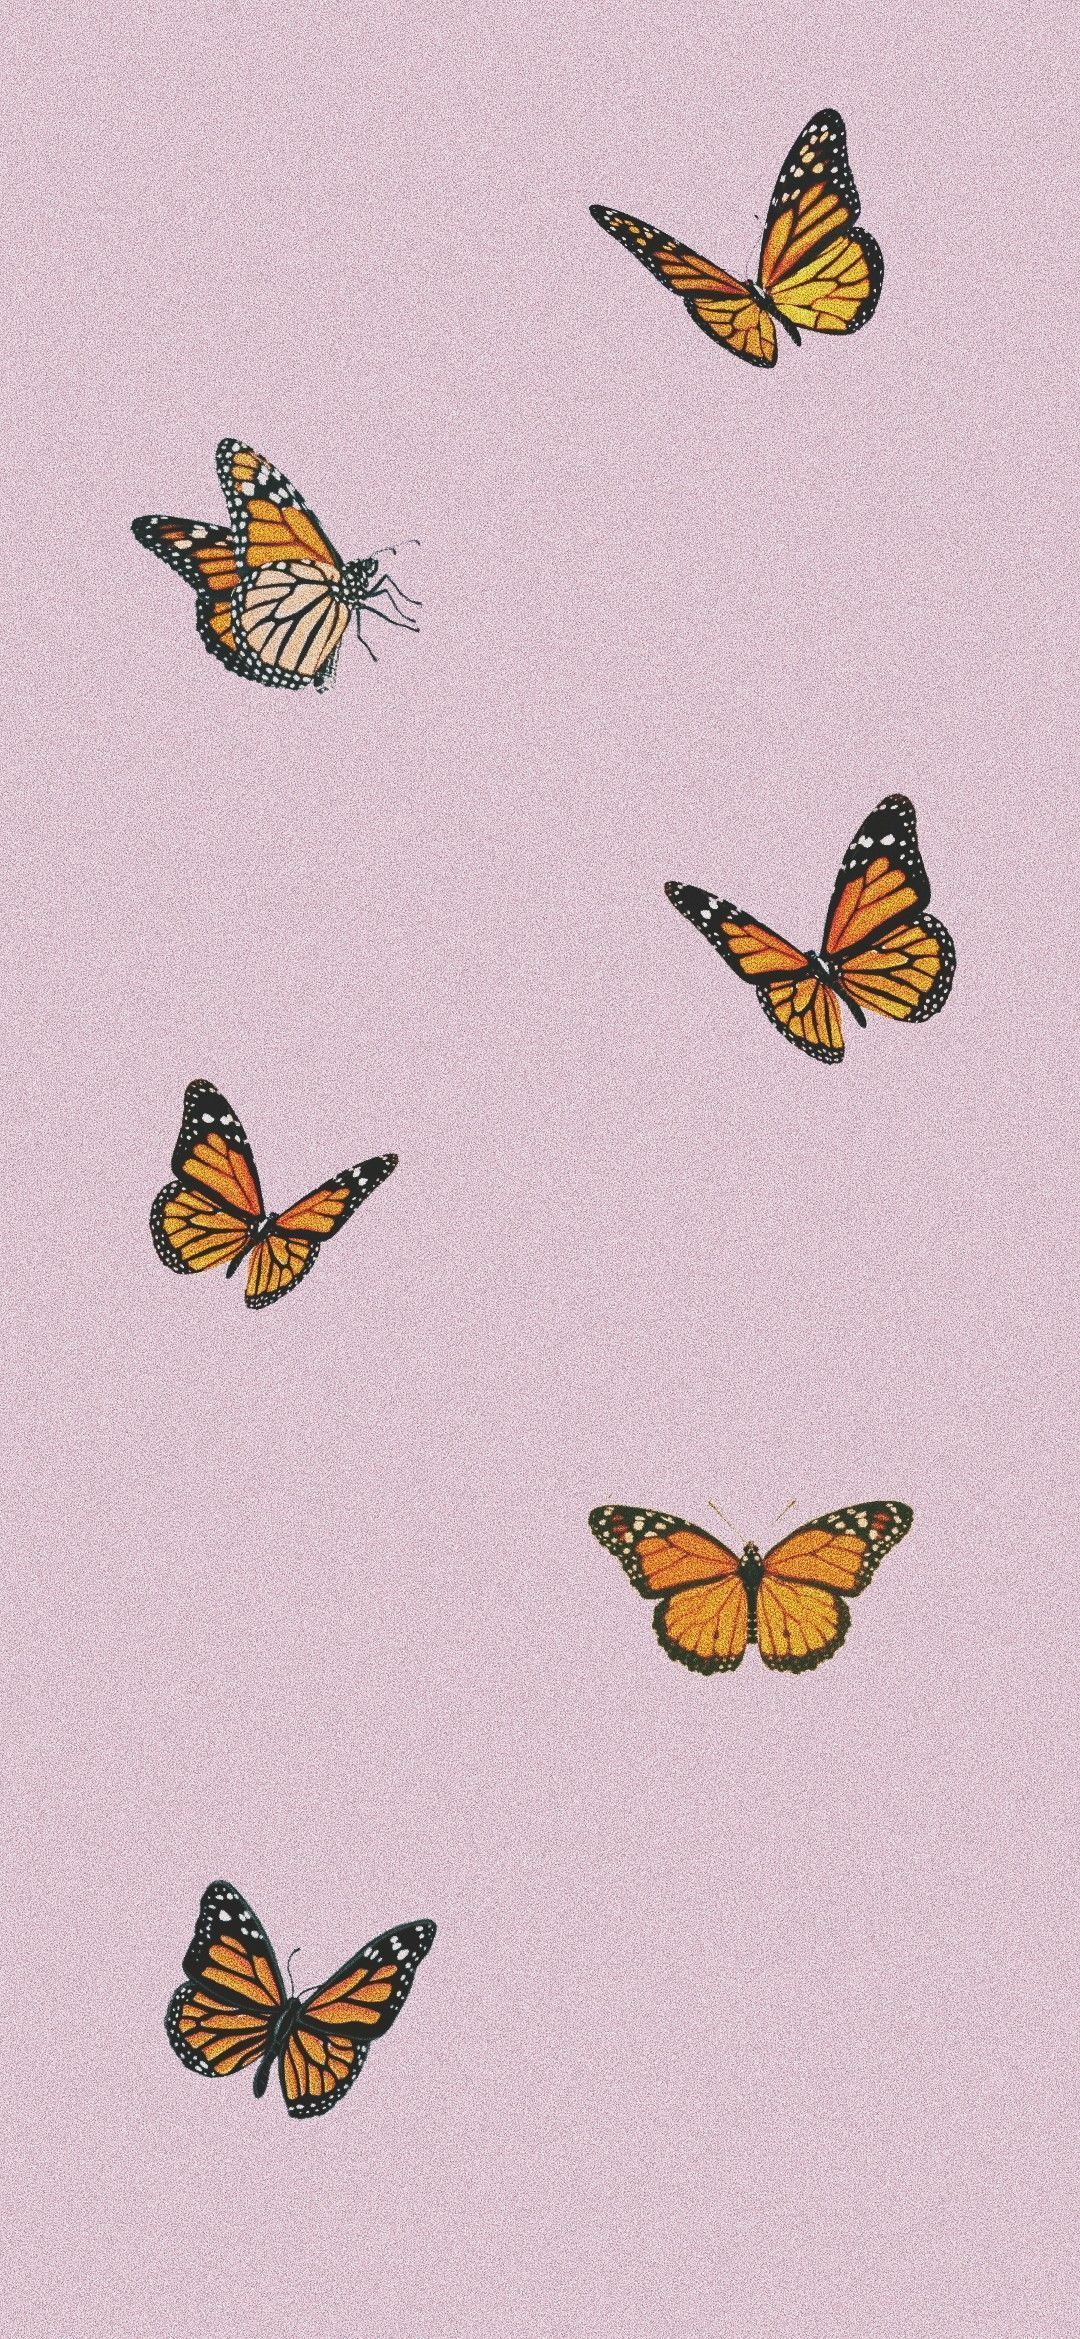 Aesthetic Butterfly iPhone Wallpapers - Wallpaper Cave